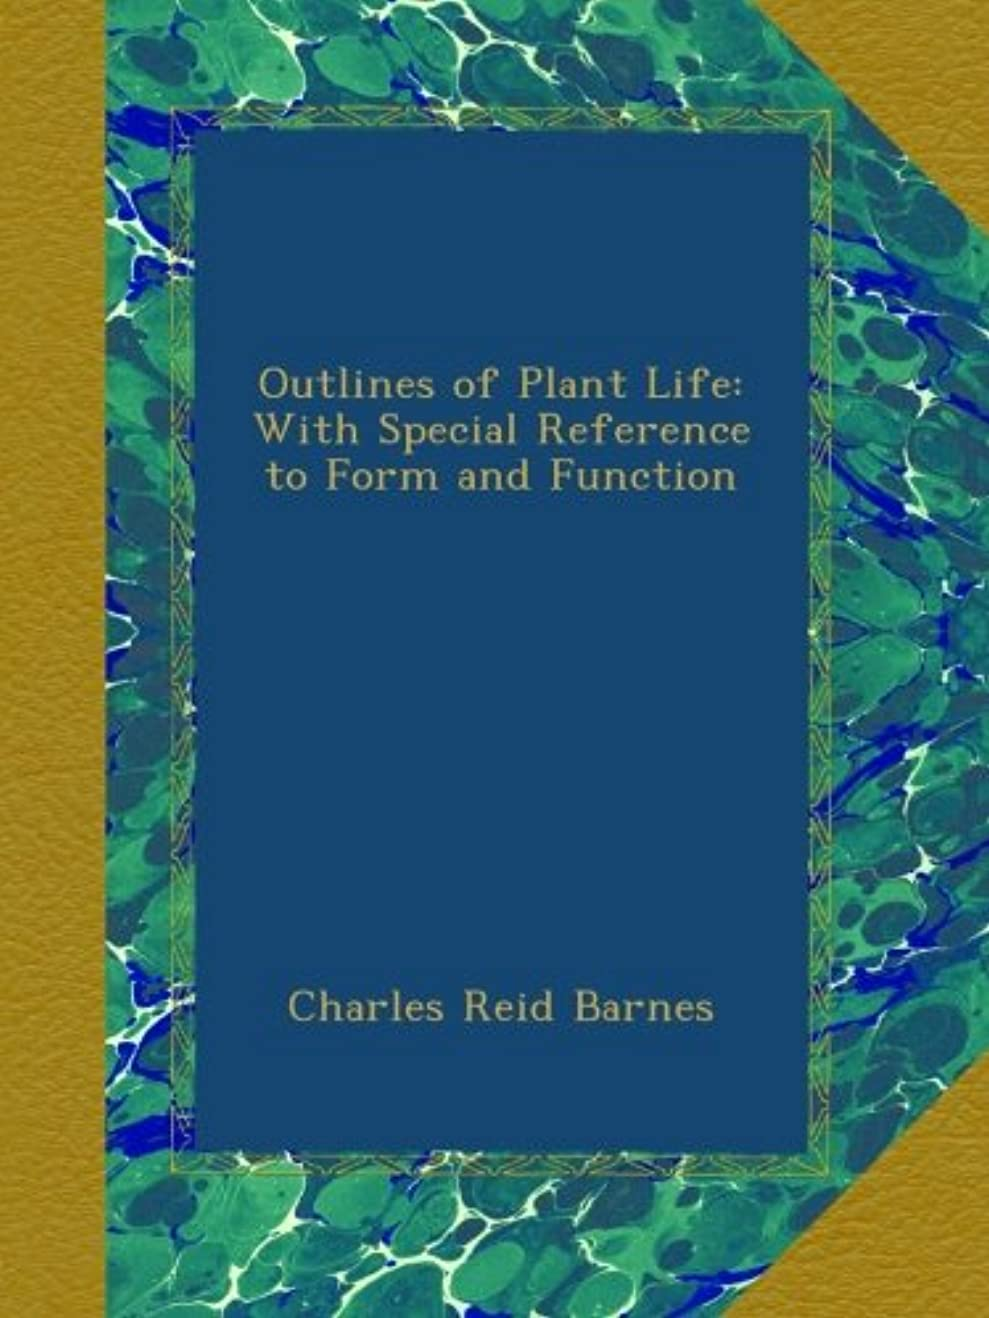 Outlines of Plant Life: With Special Reference to Form and Function